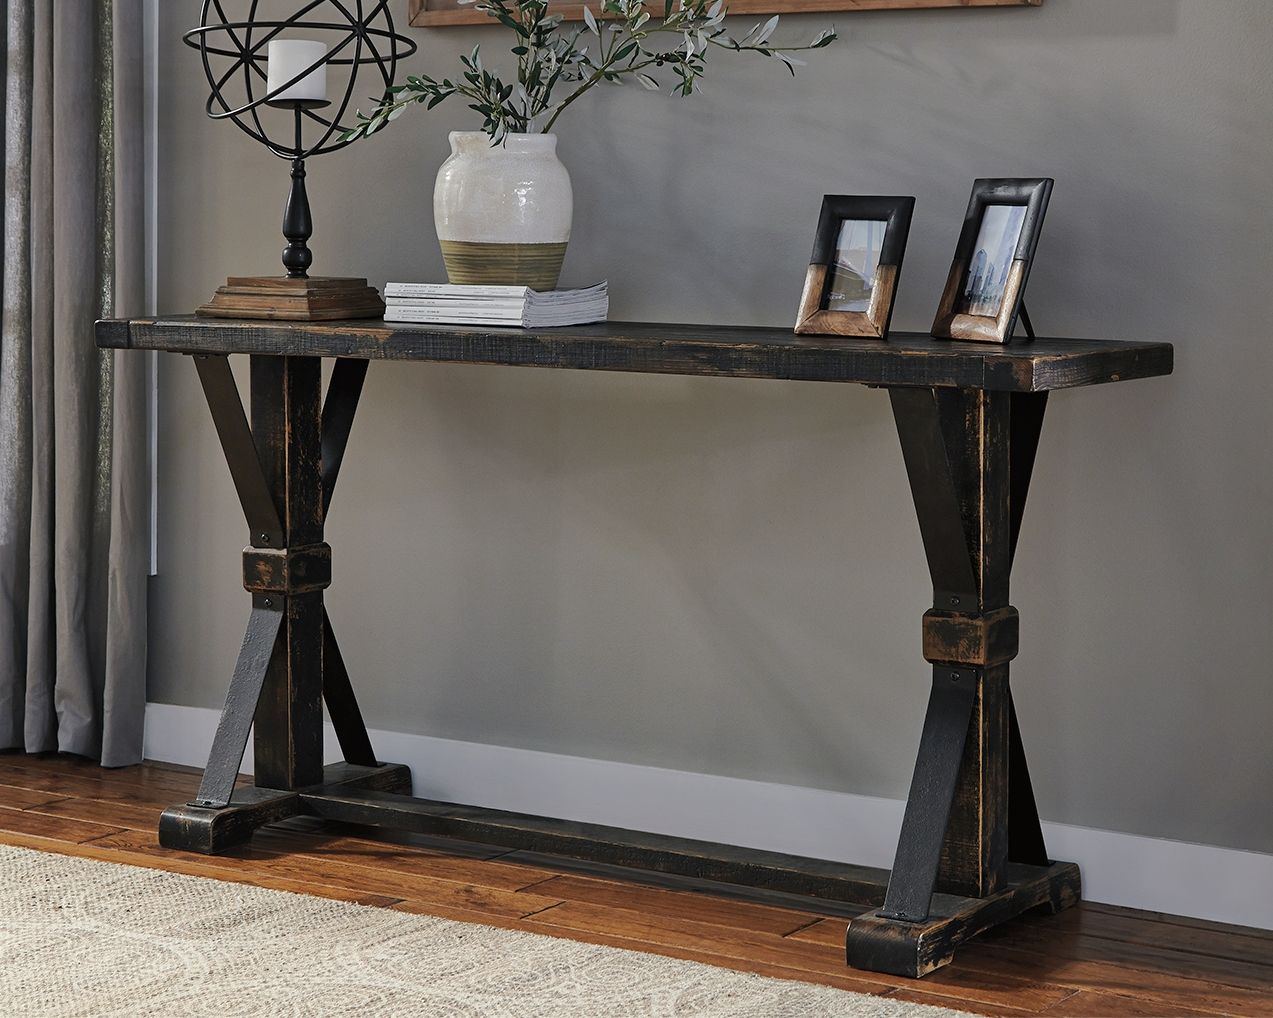 Phenomenal Beckendorf Sofa Console Table Products In 2019 Black Interior Design Ideas Inesswwsoteloinfo